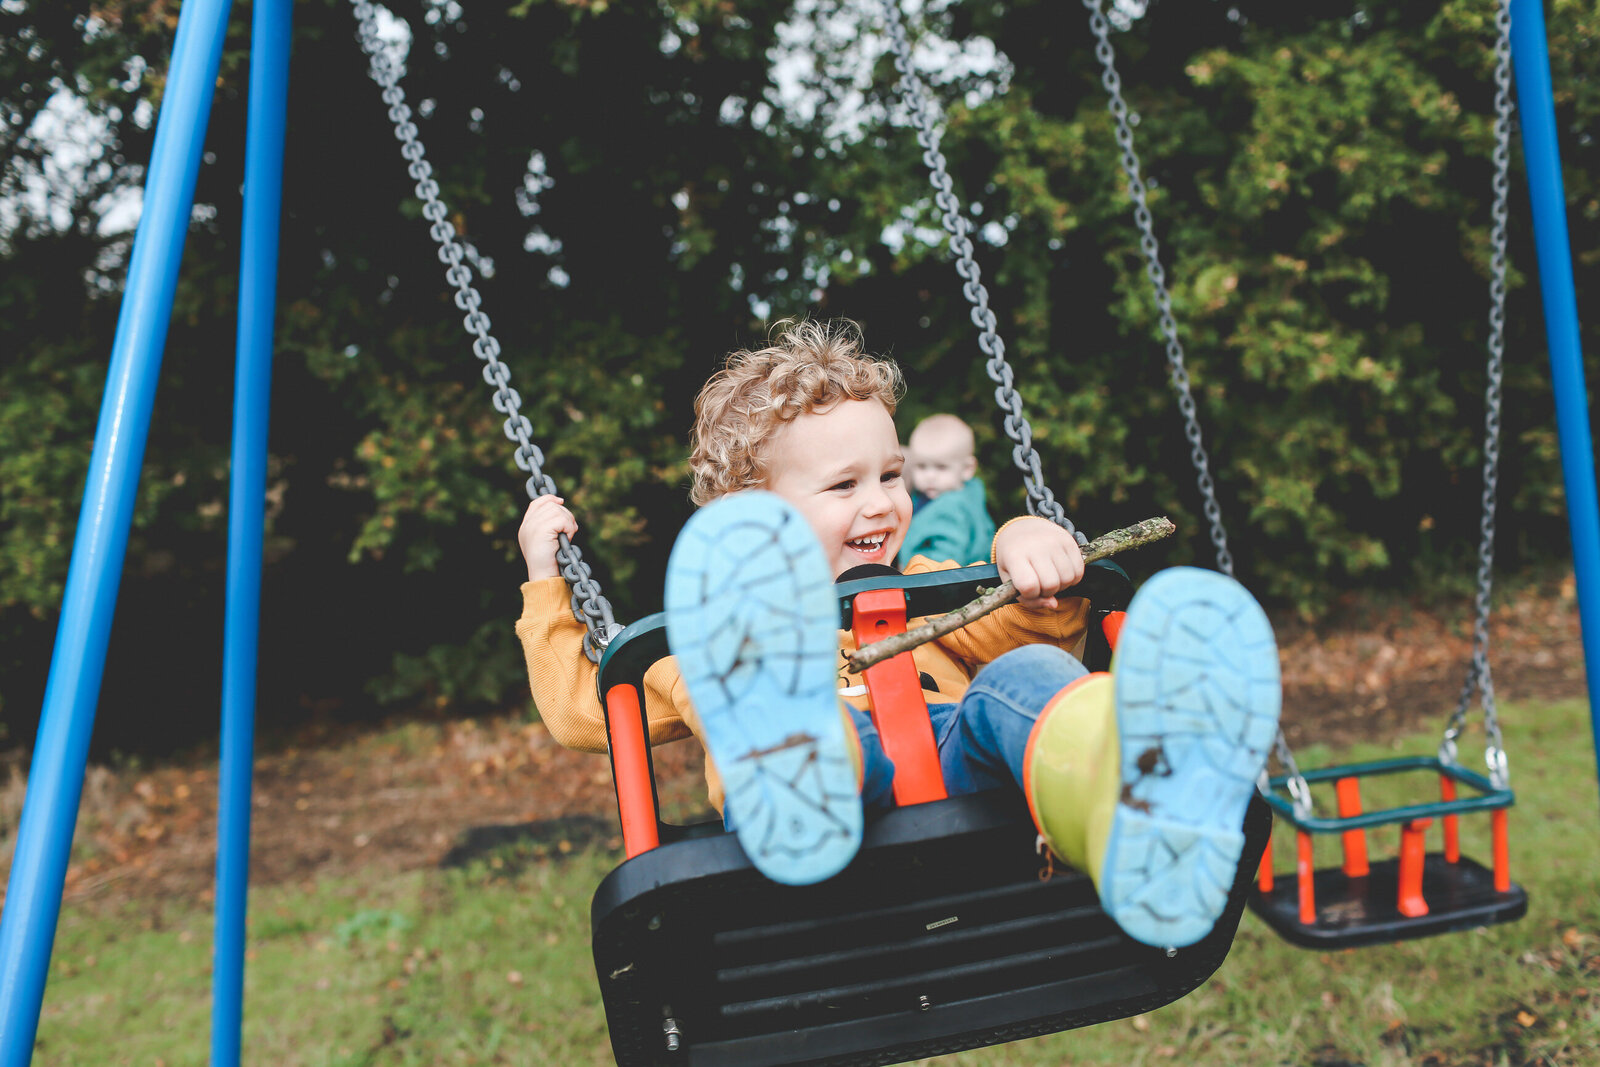 FP_FAMILY-KIDS-PLAYING-AT-SWINGS-PARK-0011